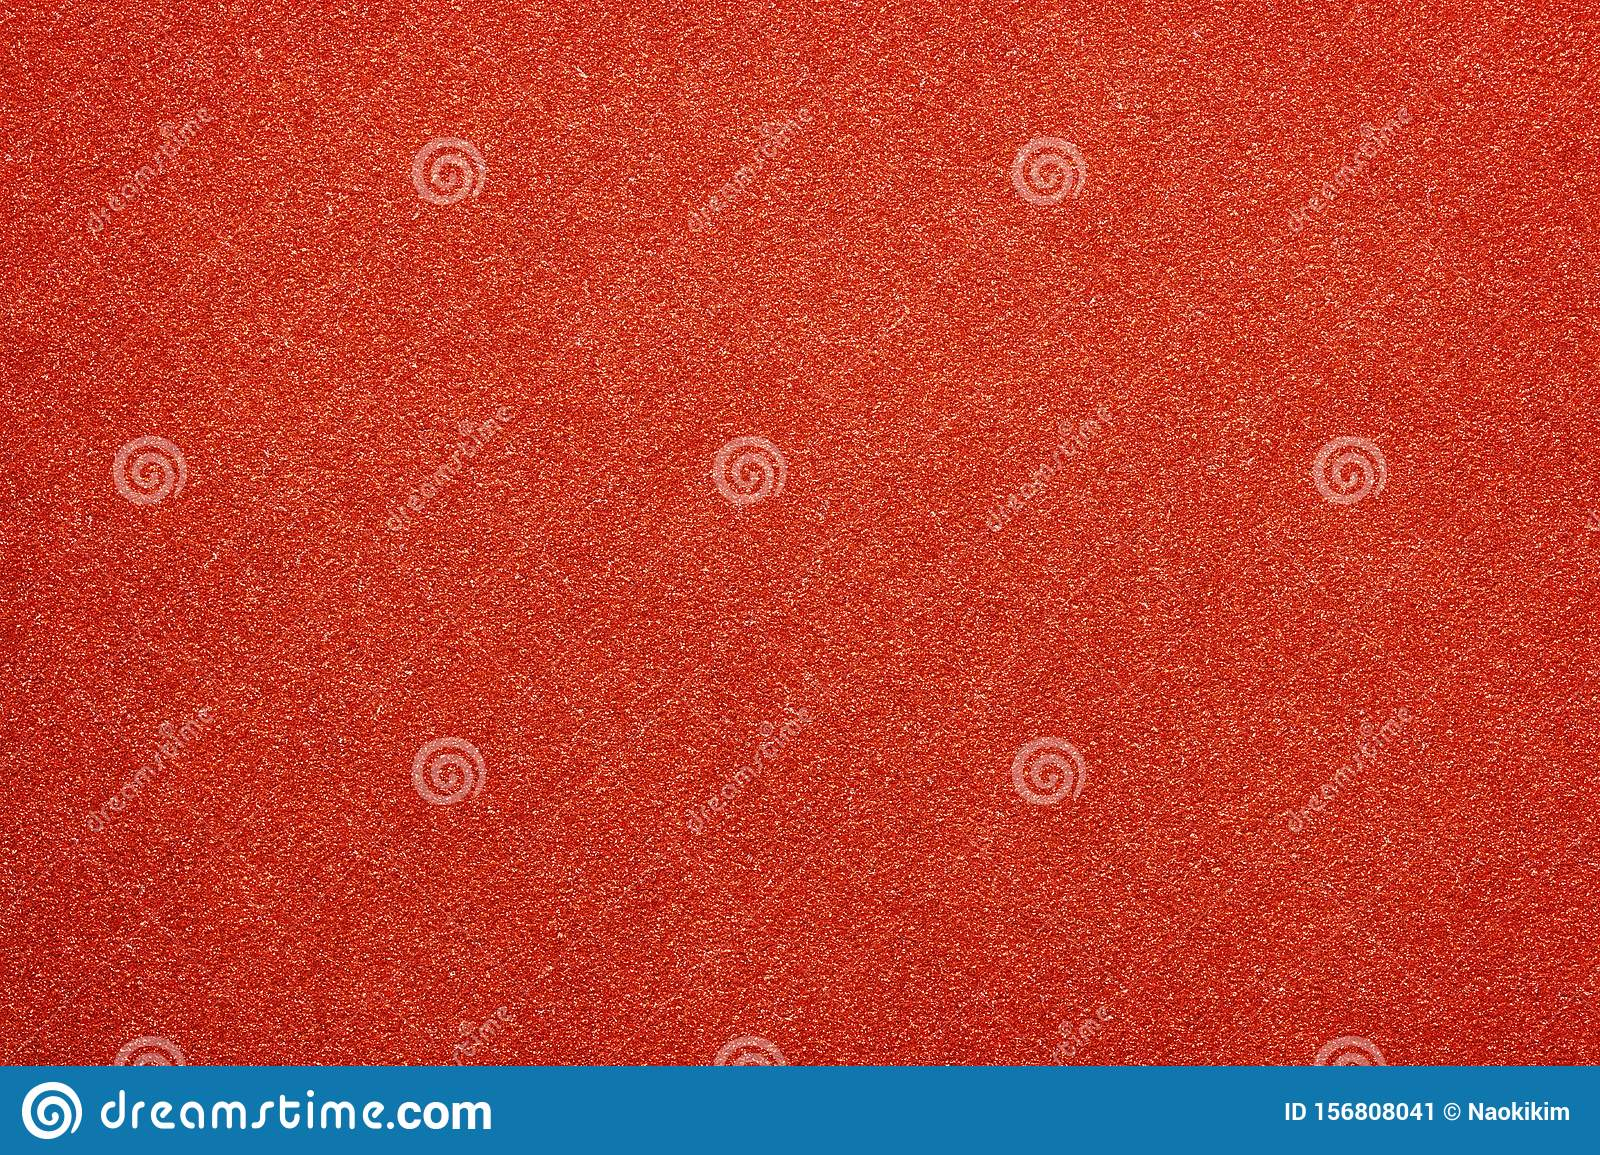 Red colored glitter paper abstract or vintage texture background